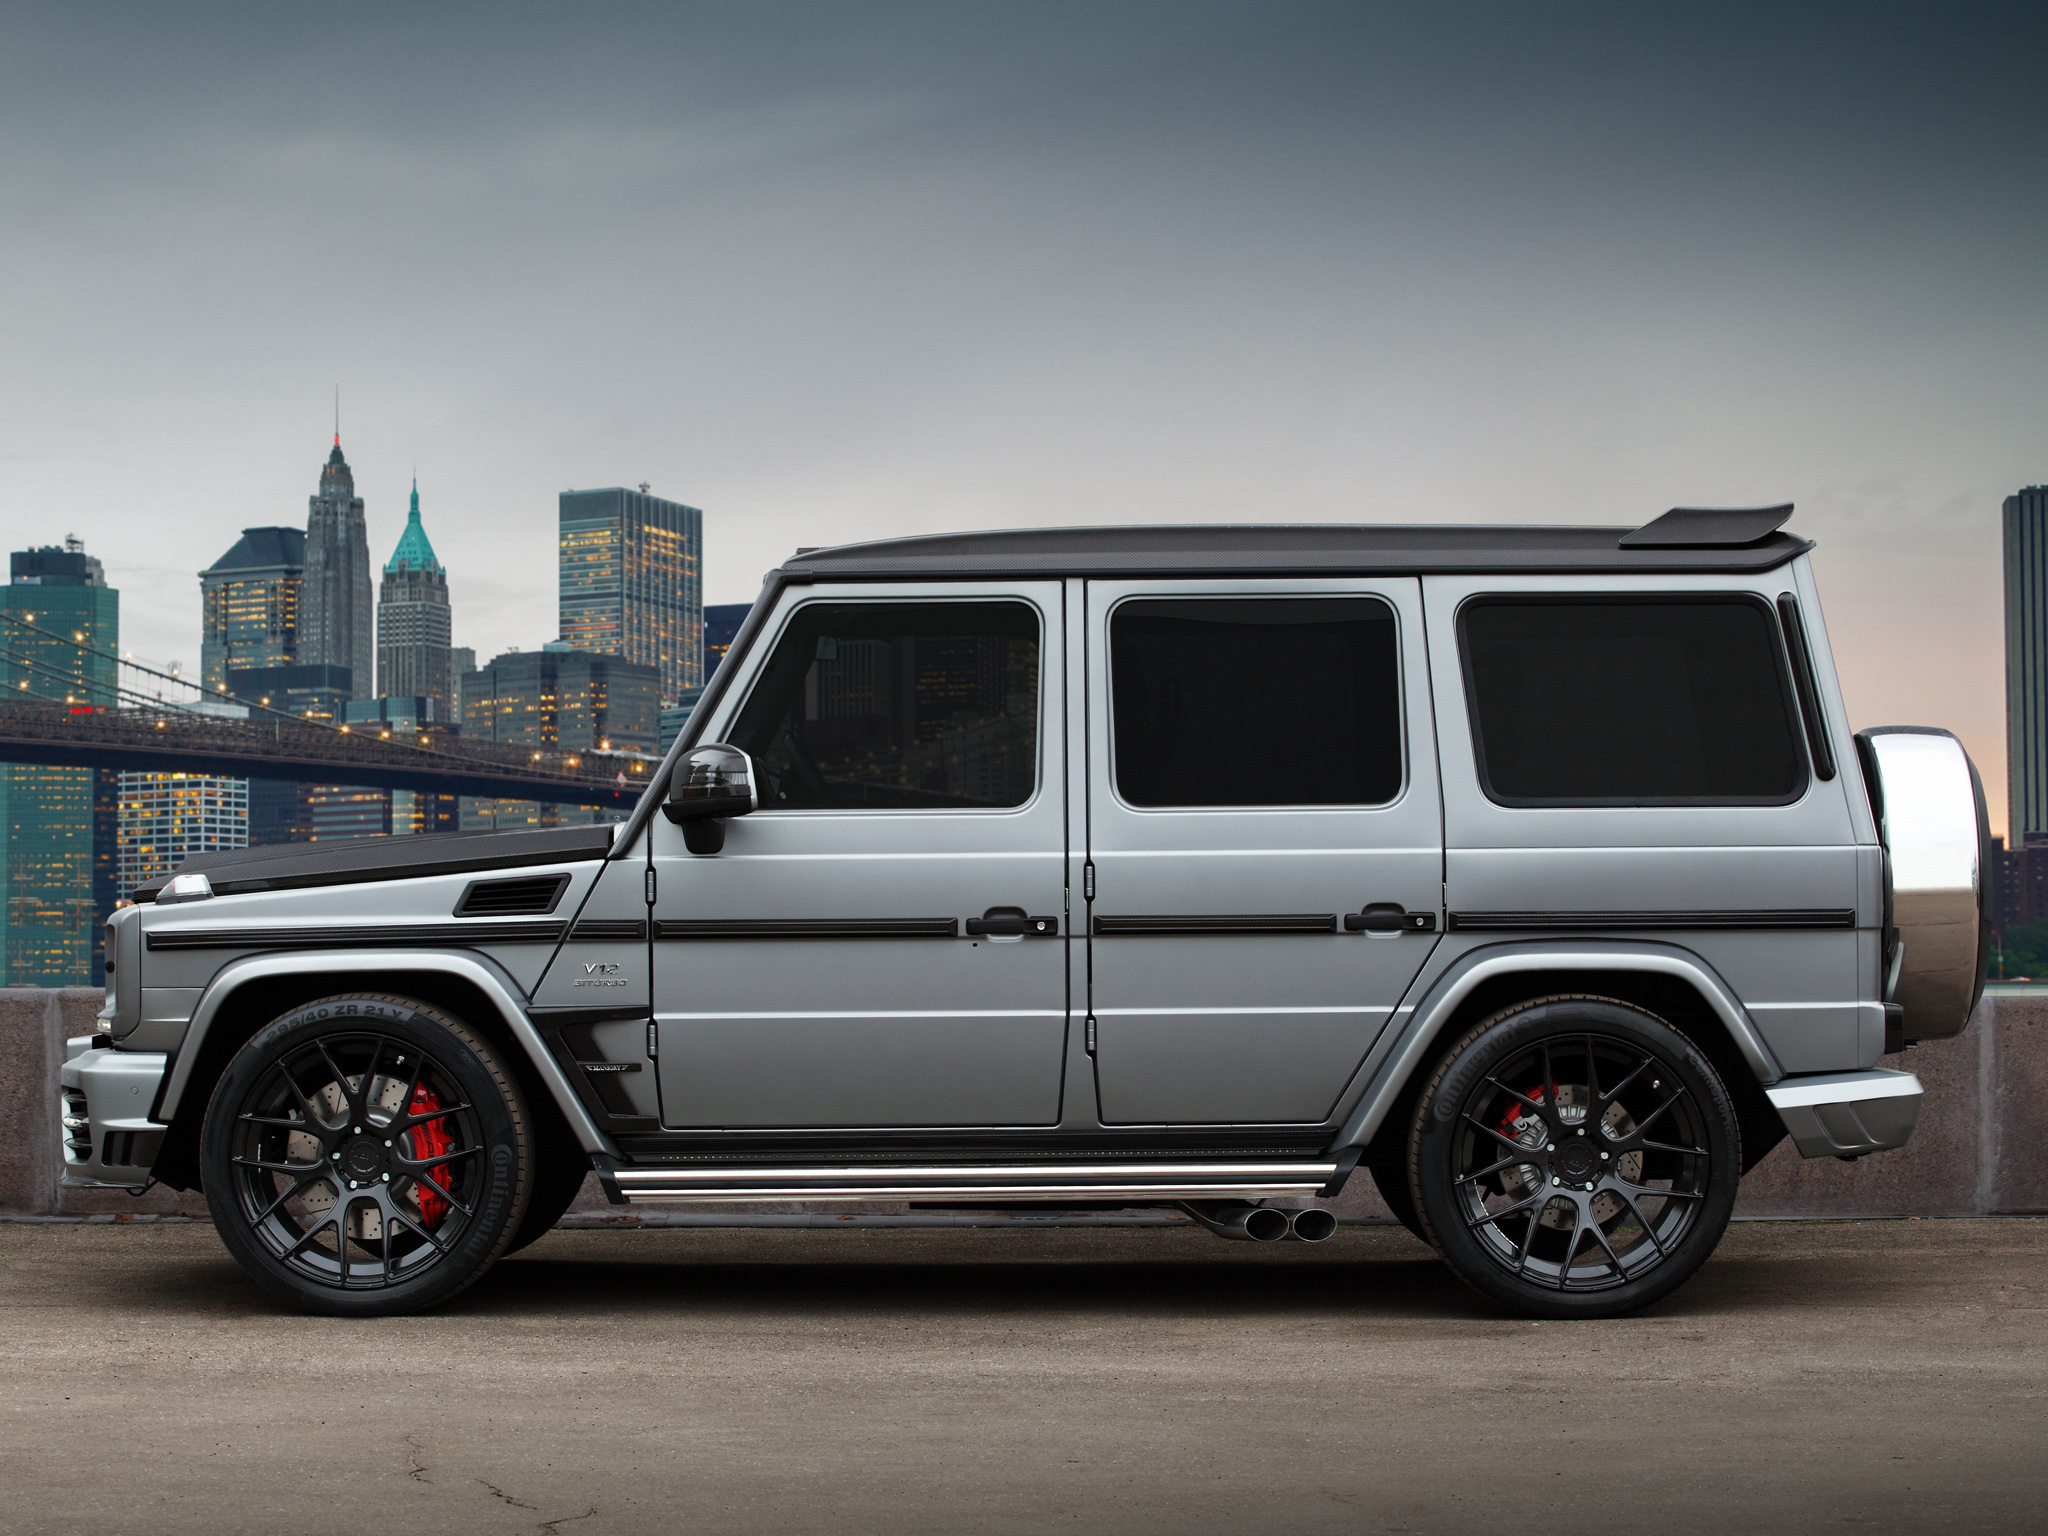 Mercedes G Tuning >> 2013 Mansory Mercedes-Benz G65 AMG (W463) suv tuning j wallpaper | 2048x1536 | 164882 | WallpaperUP